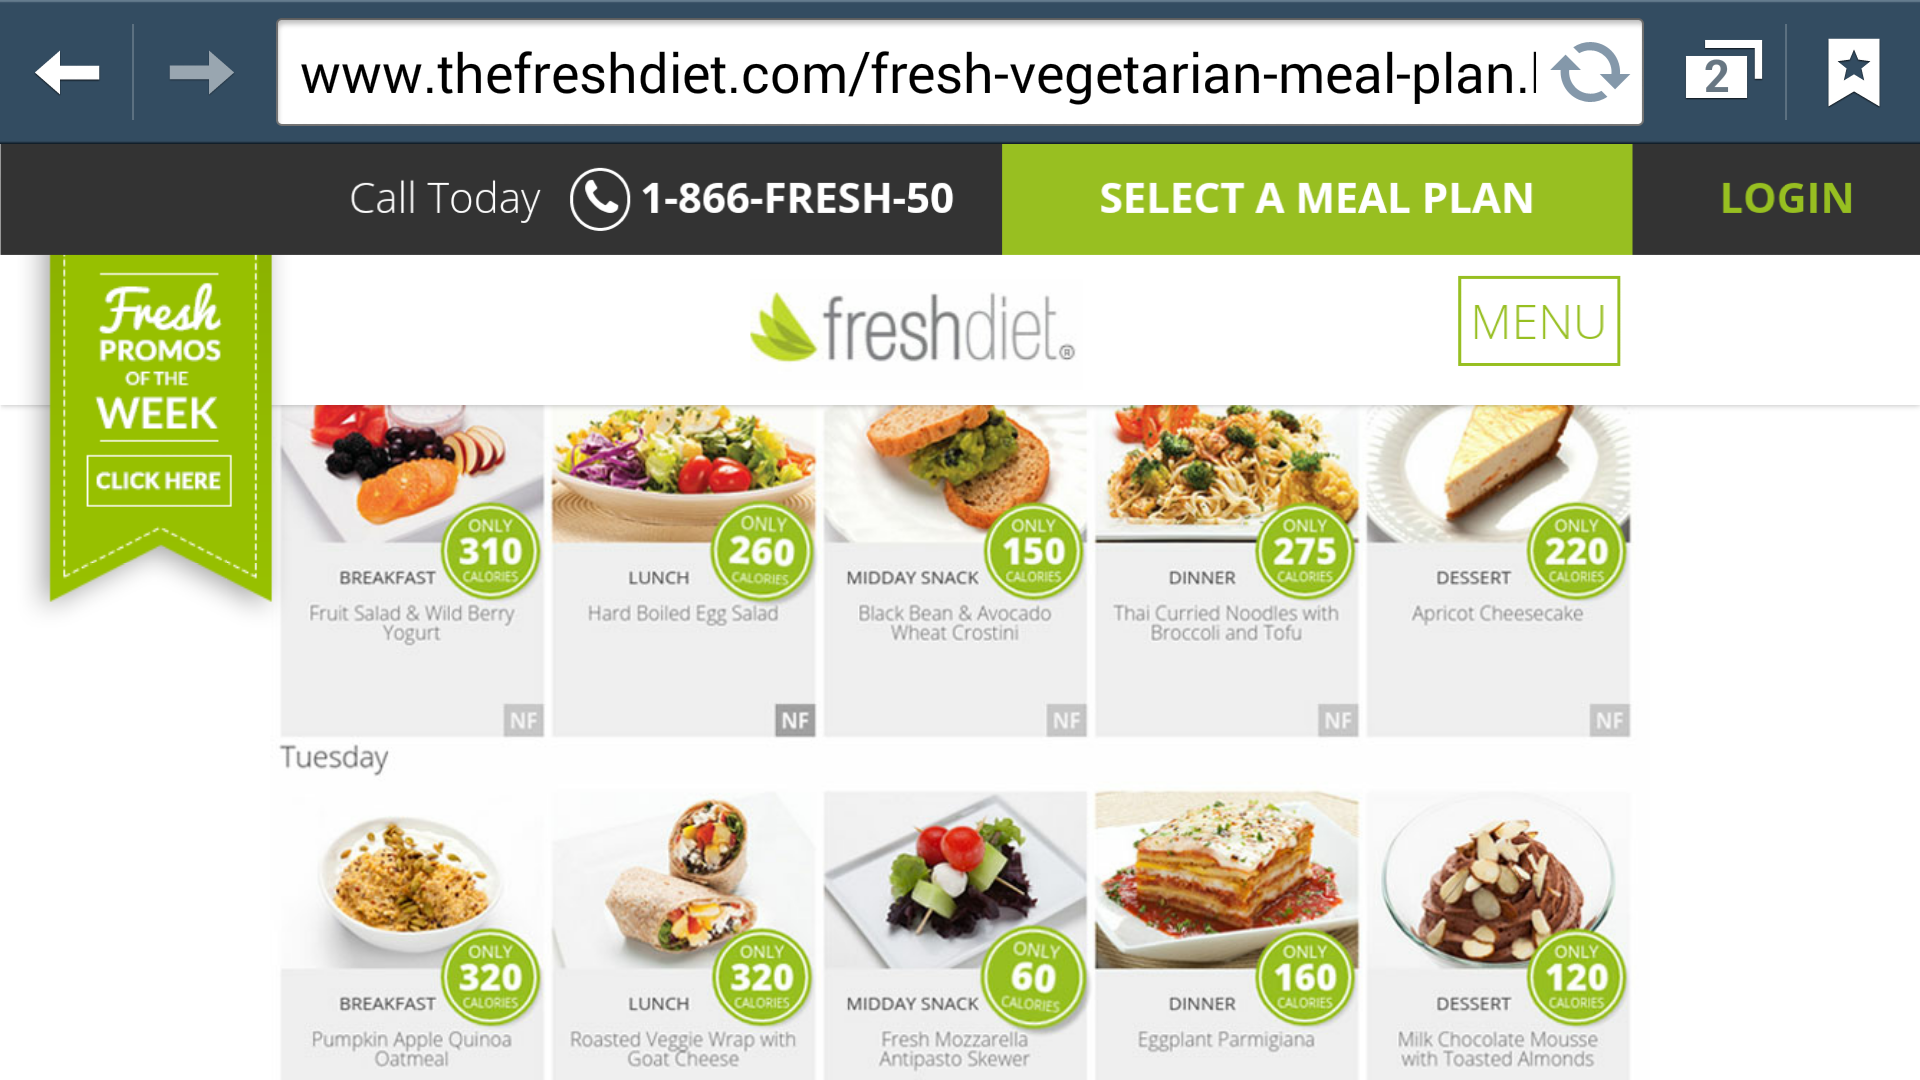 New doctors fresh meal plan launched to coincide with heart screenshot forumfinder Choice Image